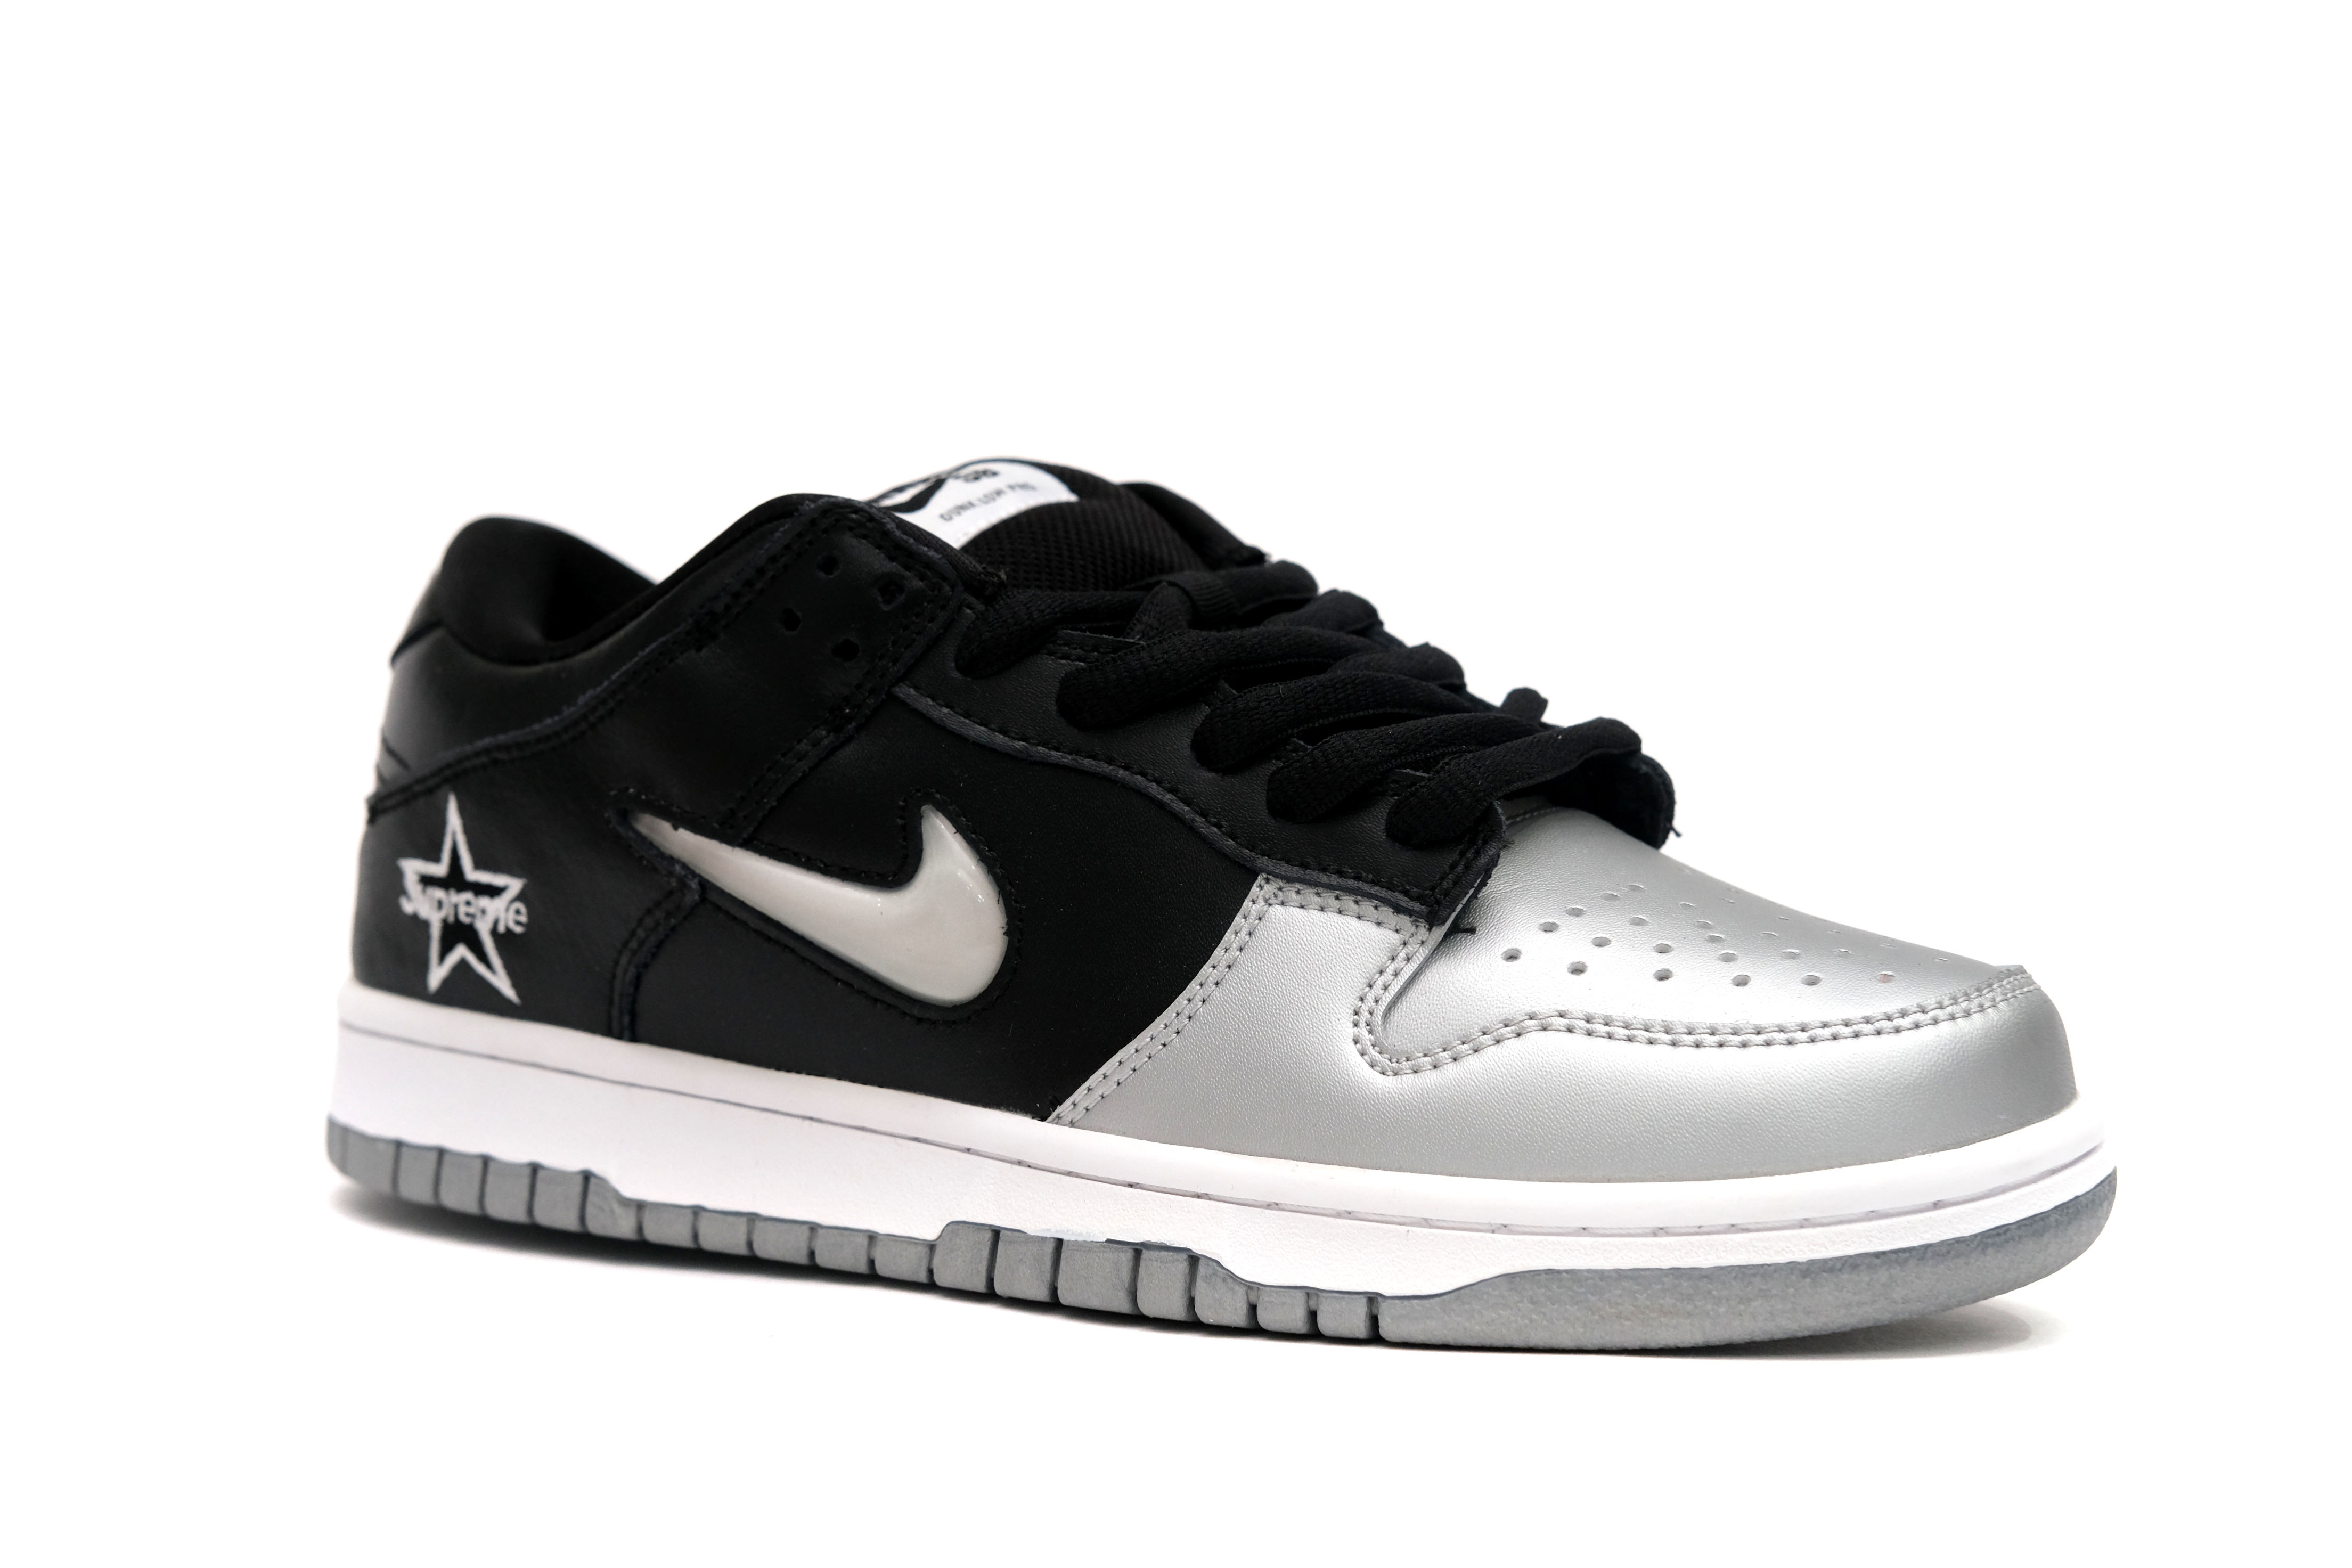 supreme-x-dunk-sb-low-qs-metallic-silver